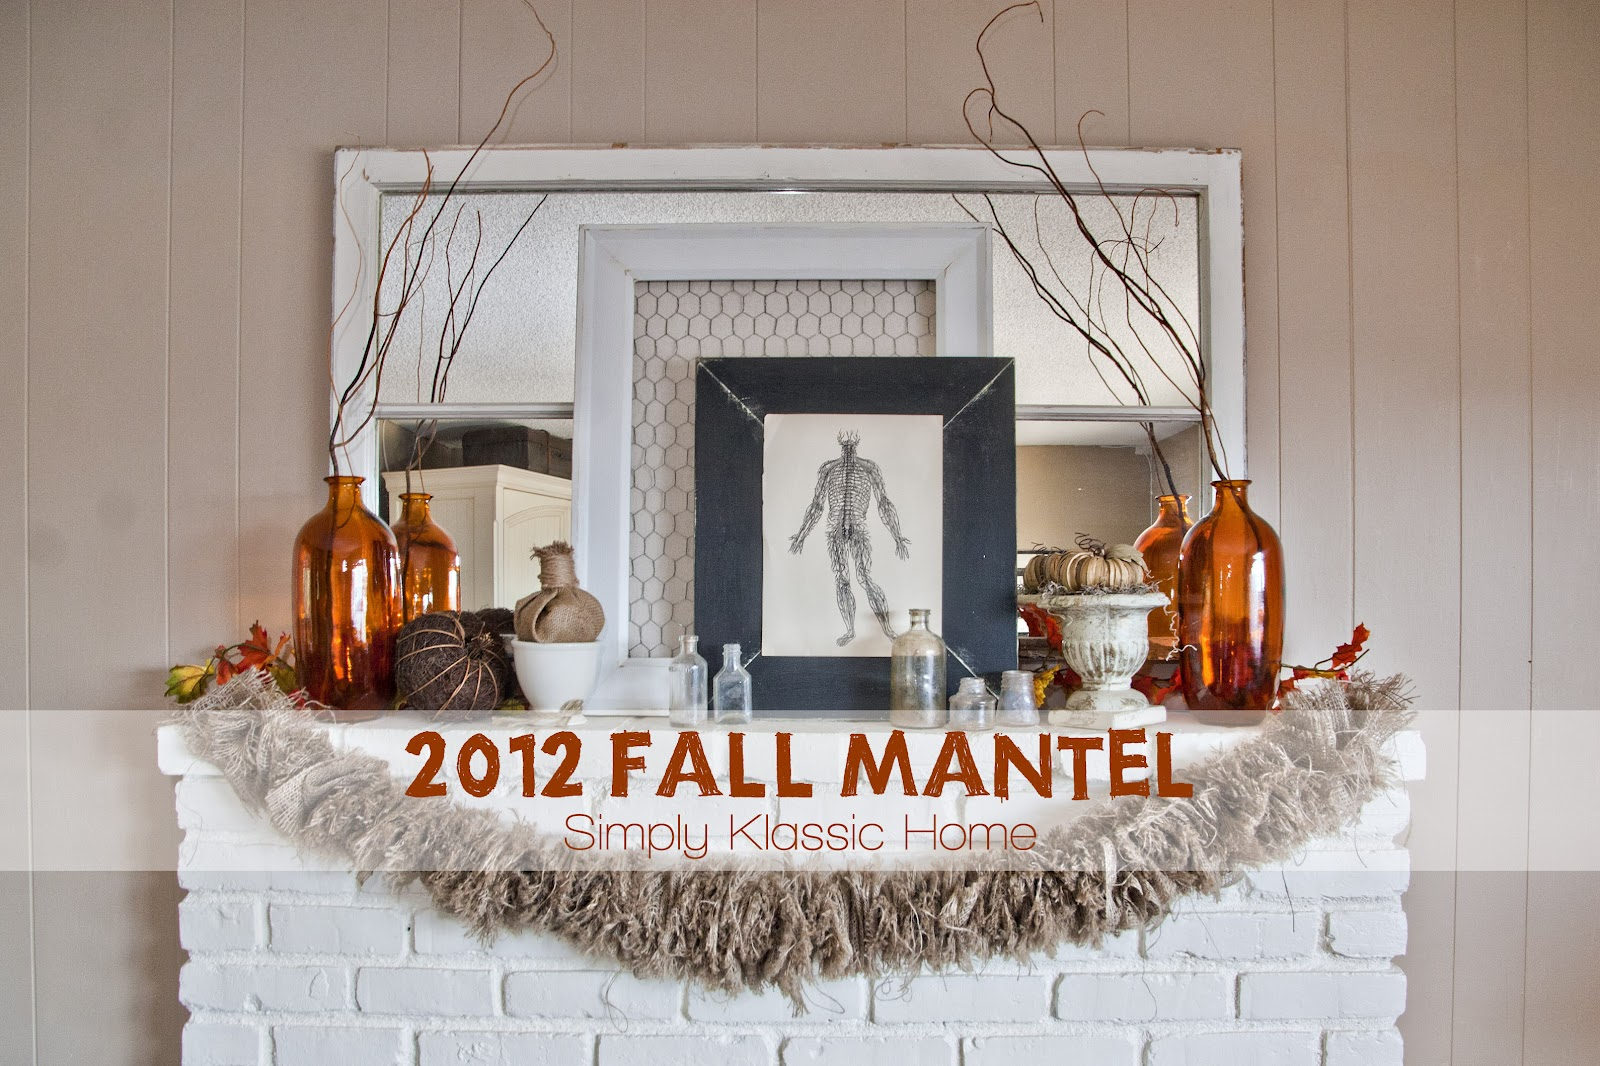 Decorating With Natural Elements decorating for fall with natural elements, part two: branches and